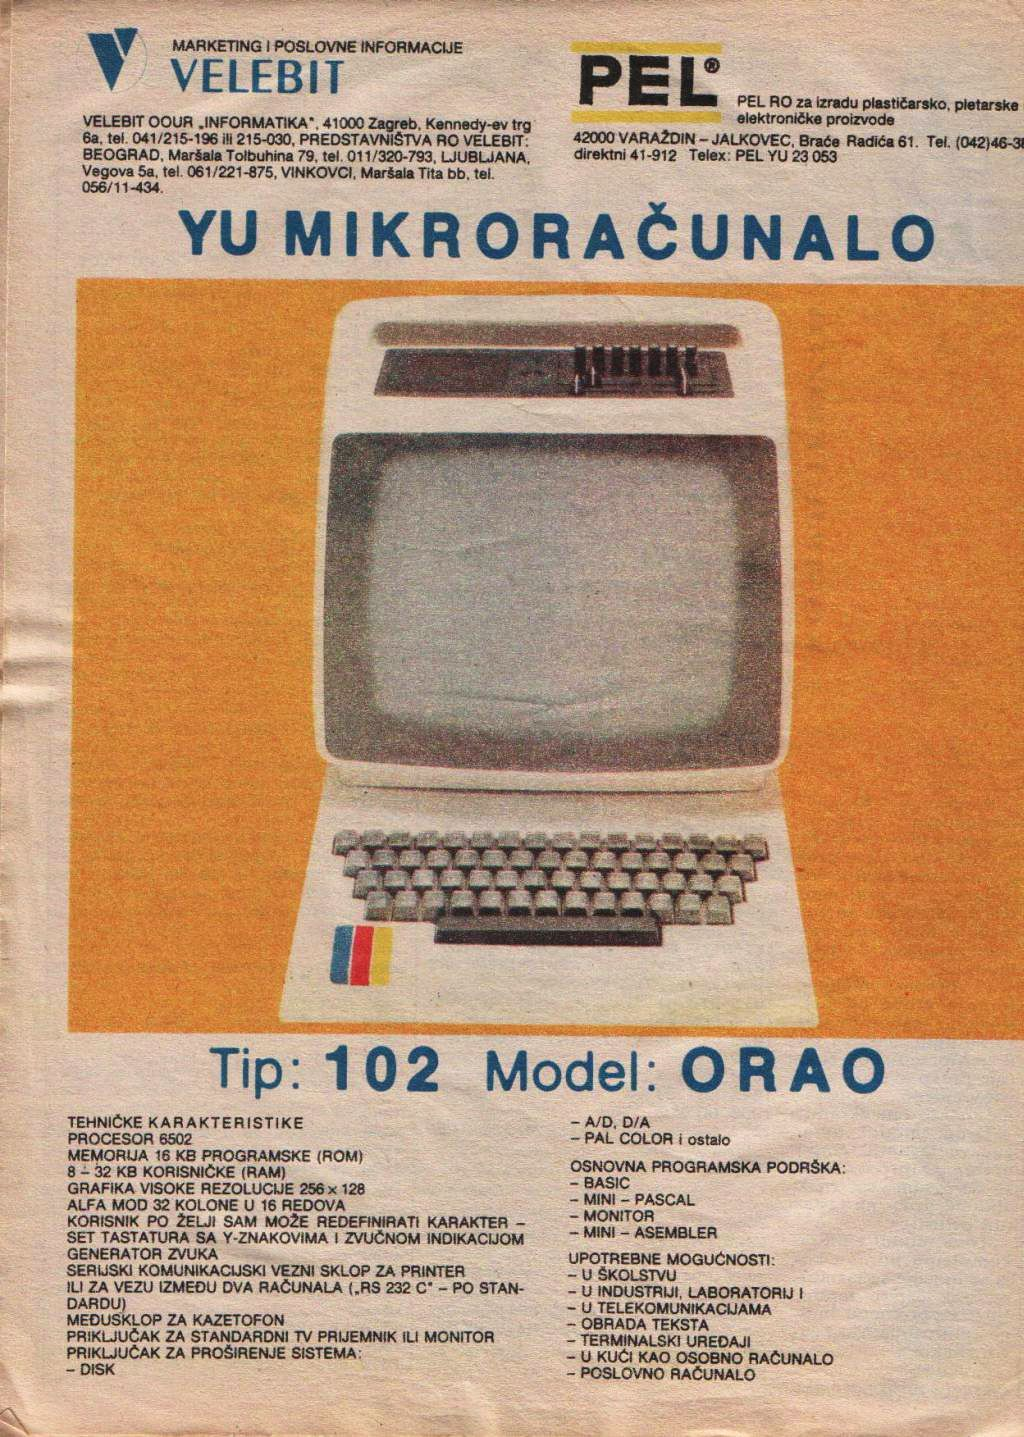 Orao En Eagle Was An 8 Bit Computer Developed By Pel Varazdin In 1984 It Was Used As A Standard Primary School Computer I Retro Ads Retro Waves Vintage Ads